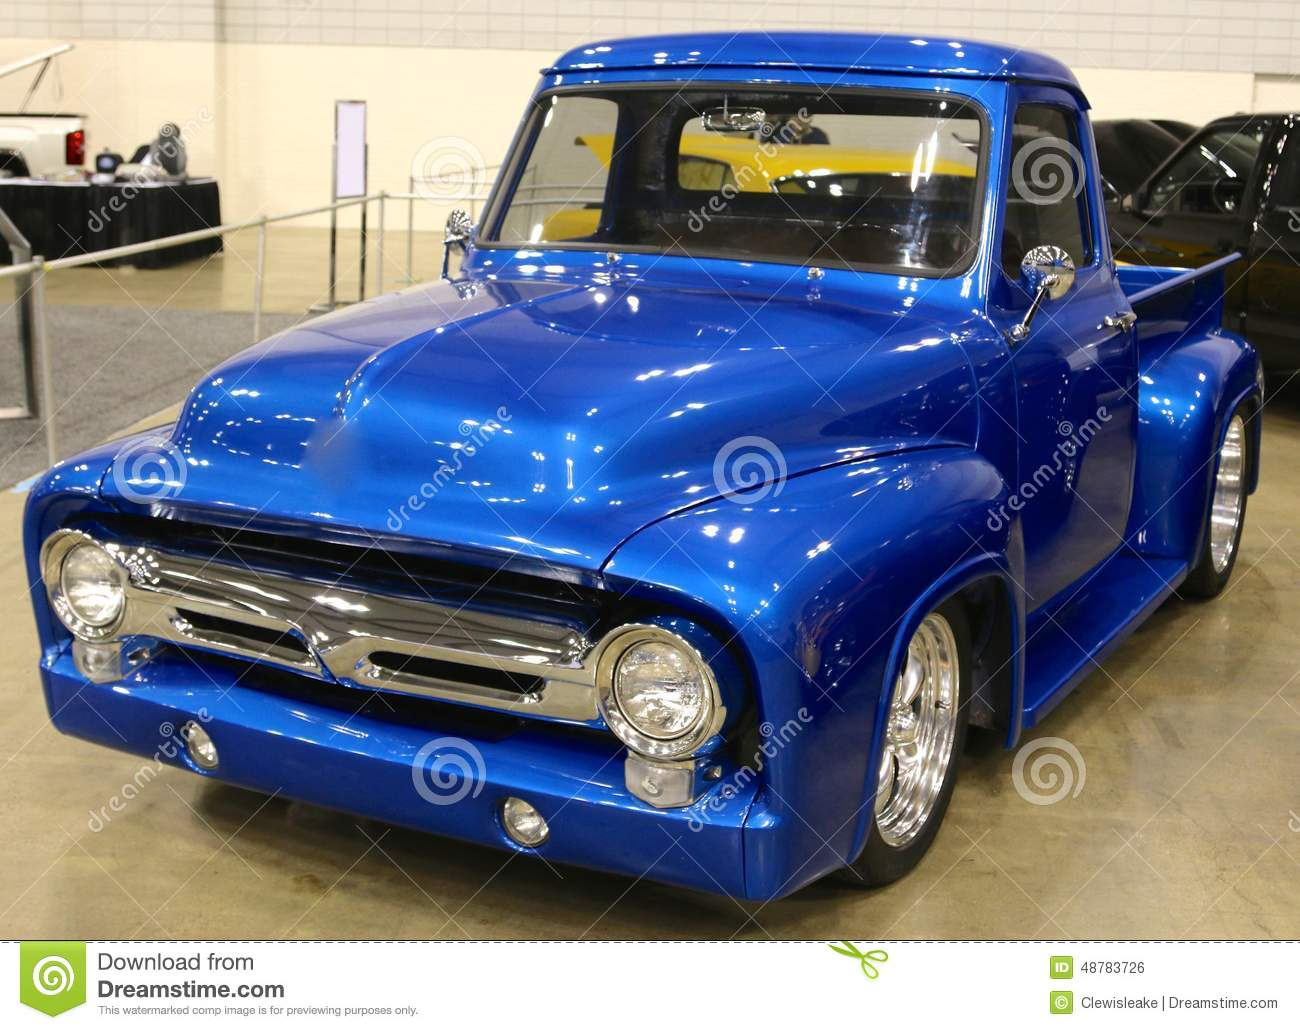 showroom condition antique blue ford pick-up truck. editorial